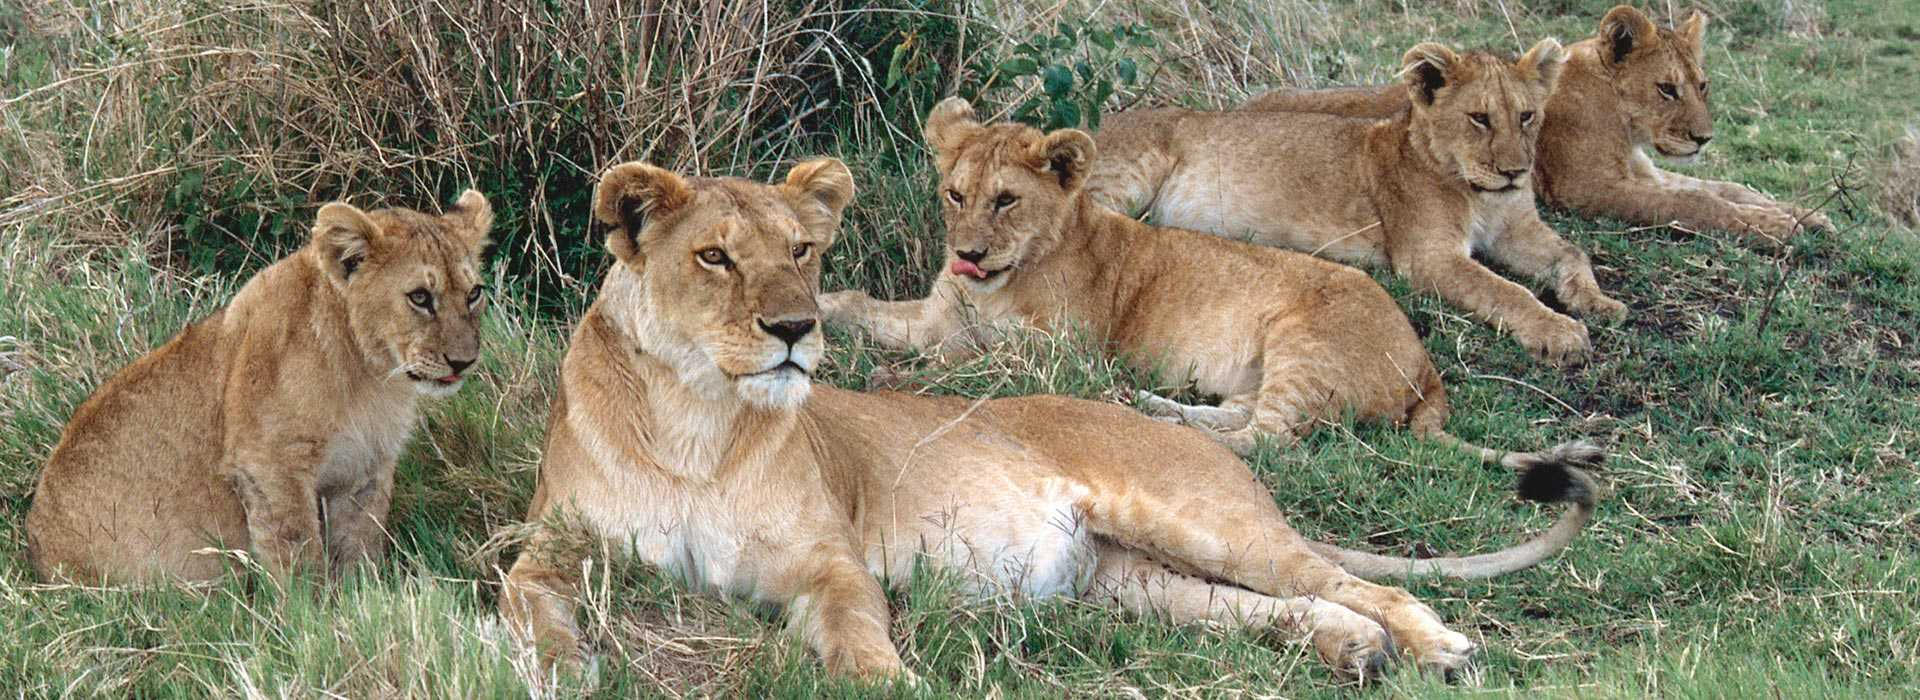 Kenya Masai Mara Safari Tours Somak Holidays - Maasai tribe wild animals attend wedding kenya